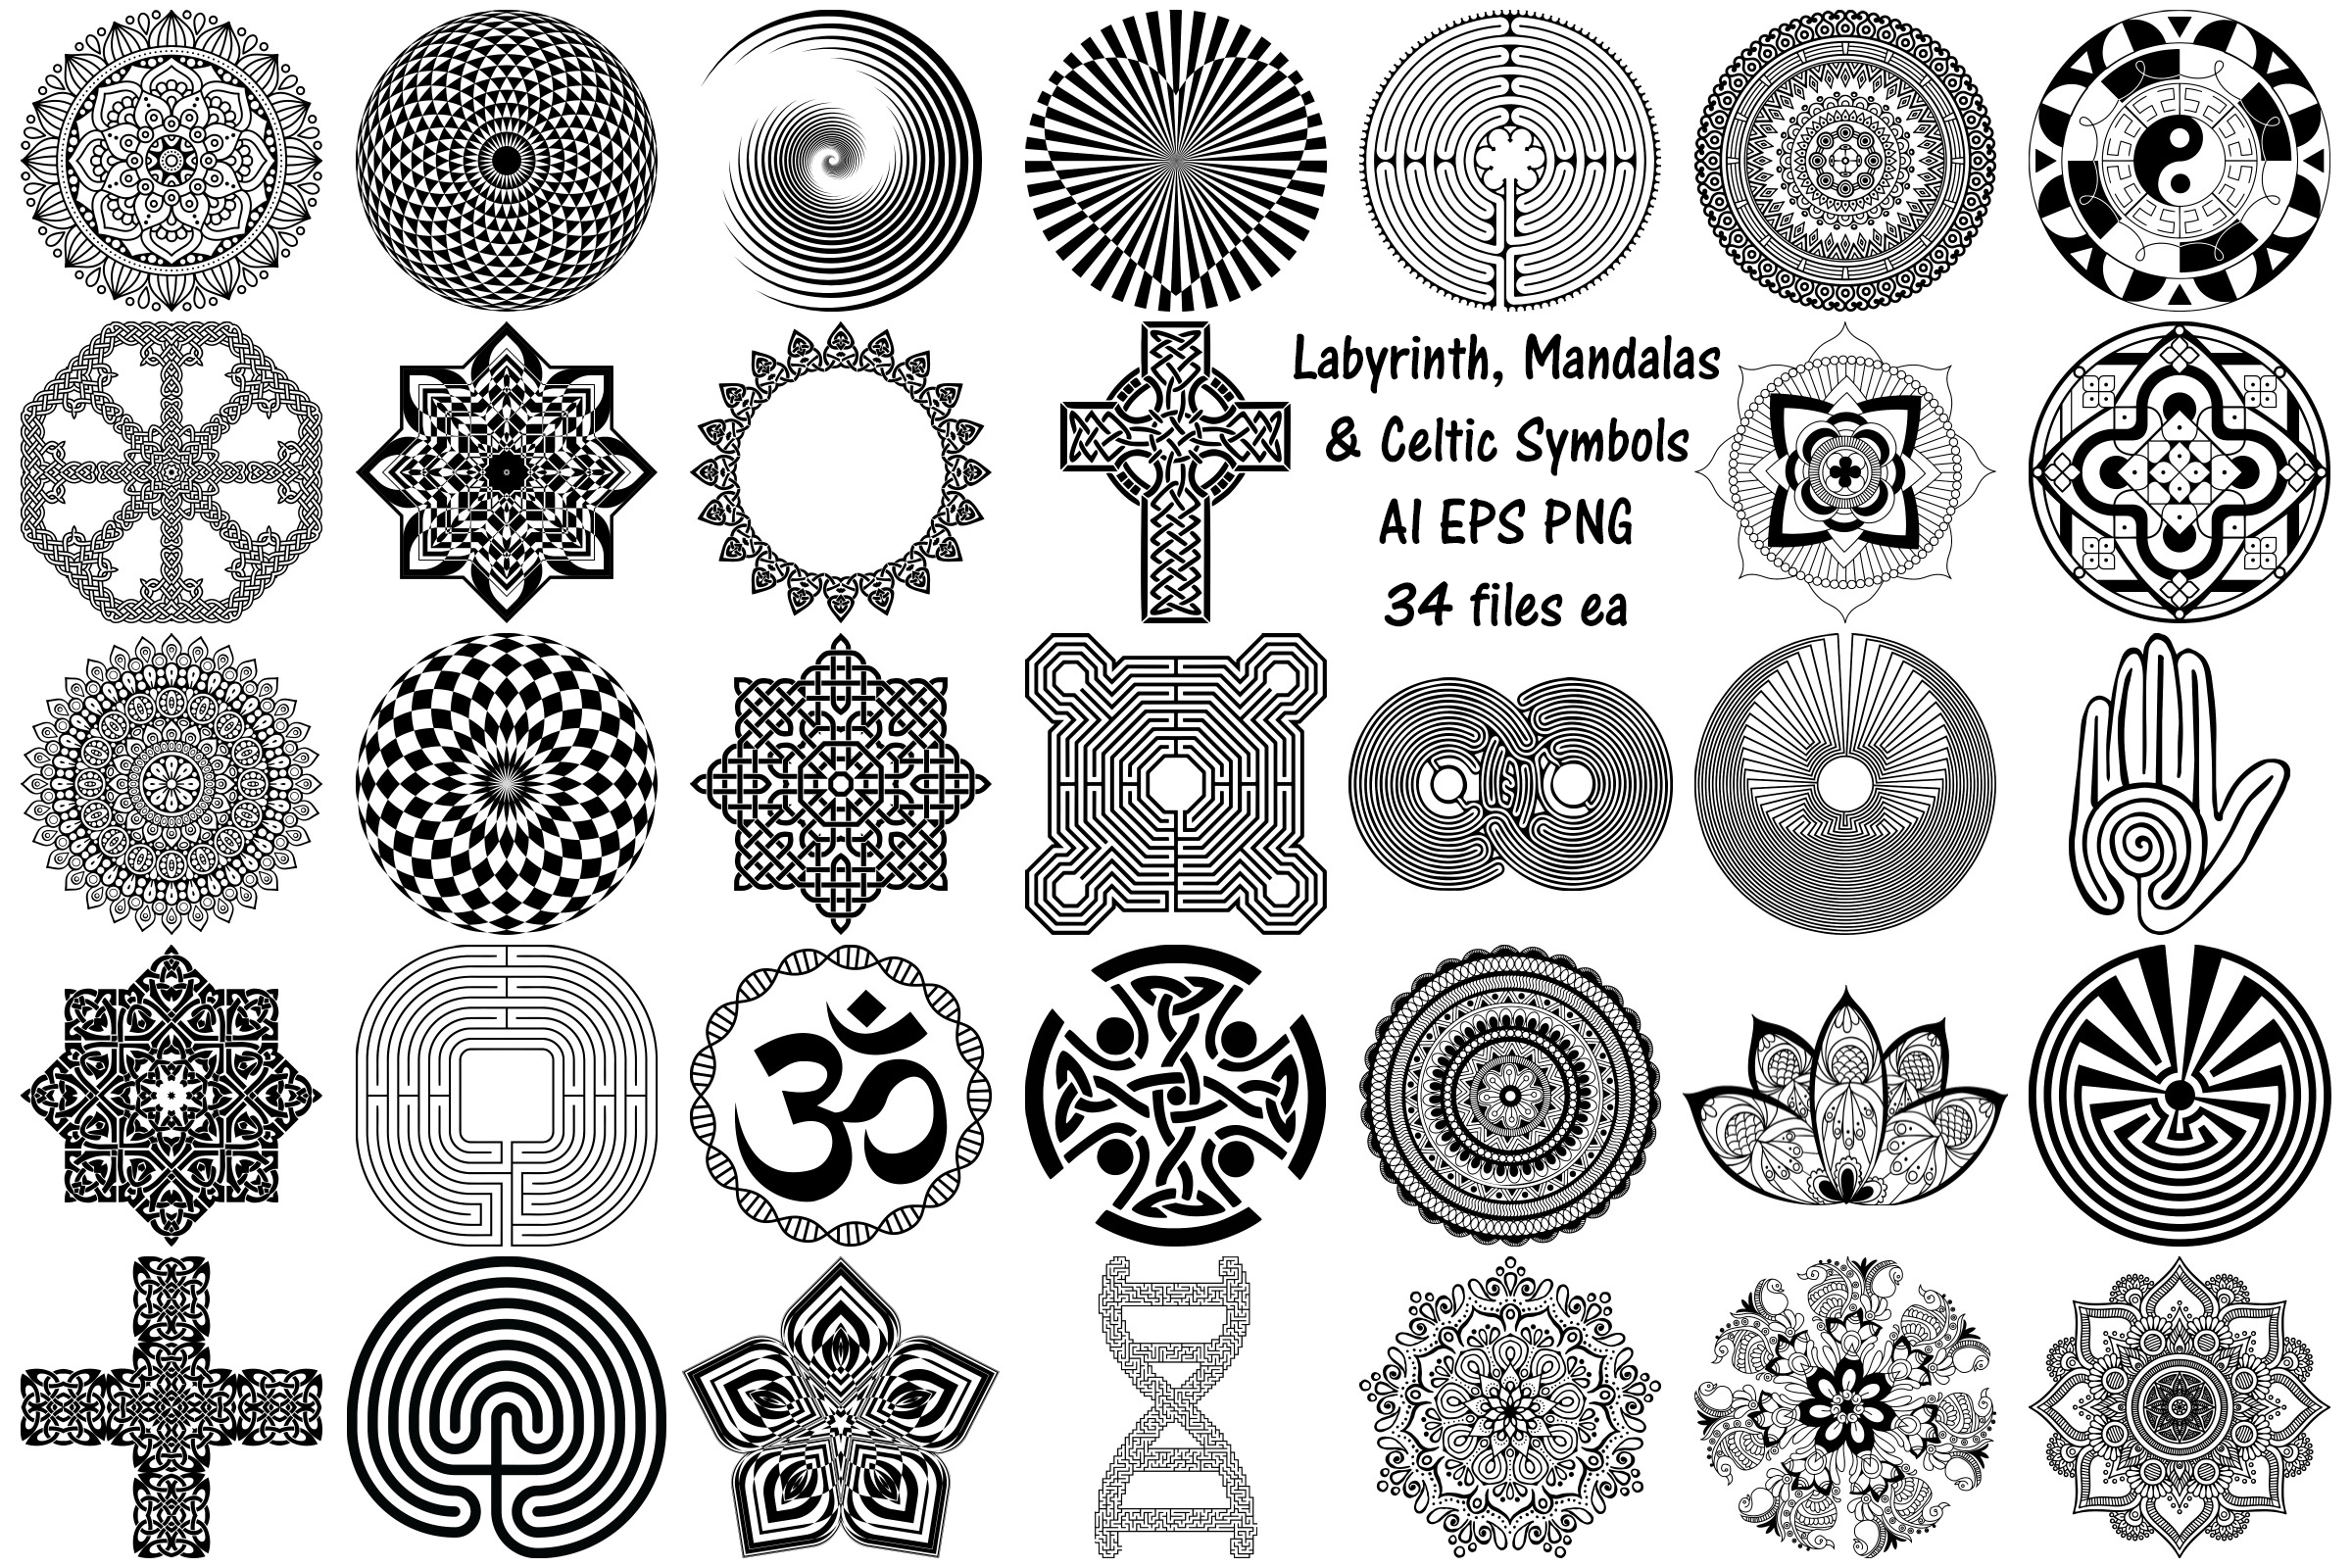 Labyrinth, Mandalas & Celtic Vectors AI EPS PNG example image 1